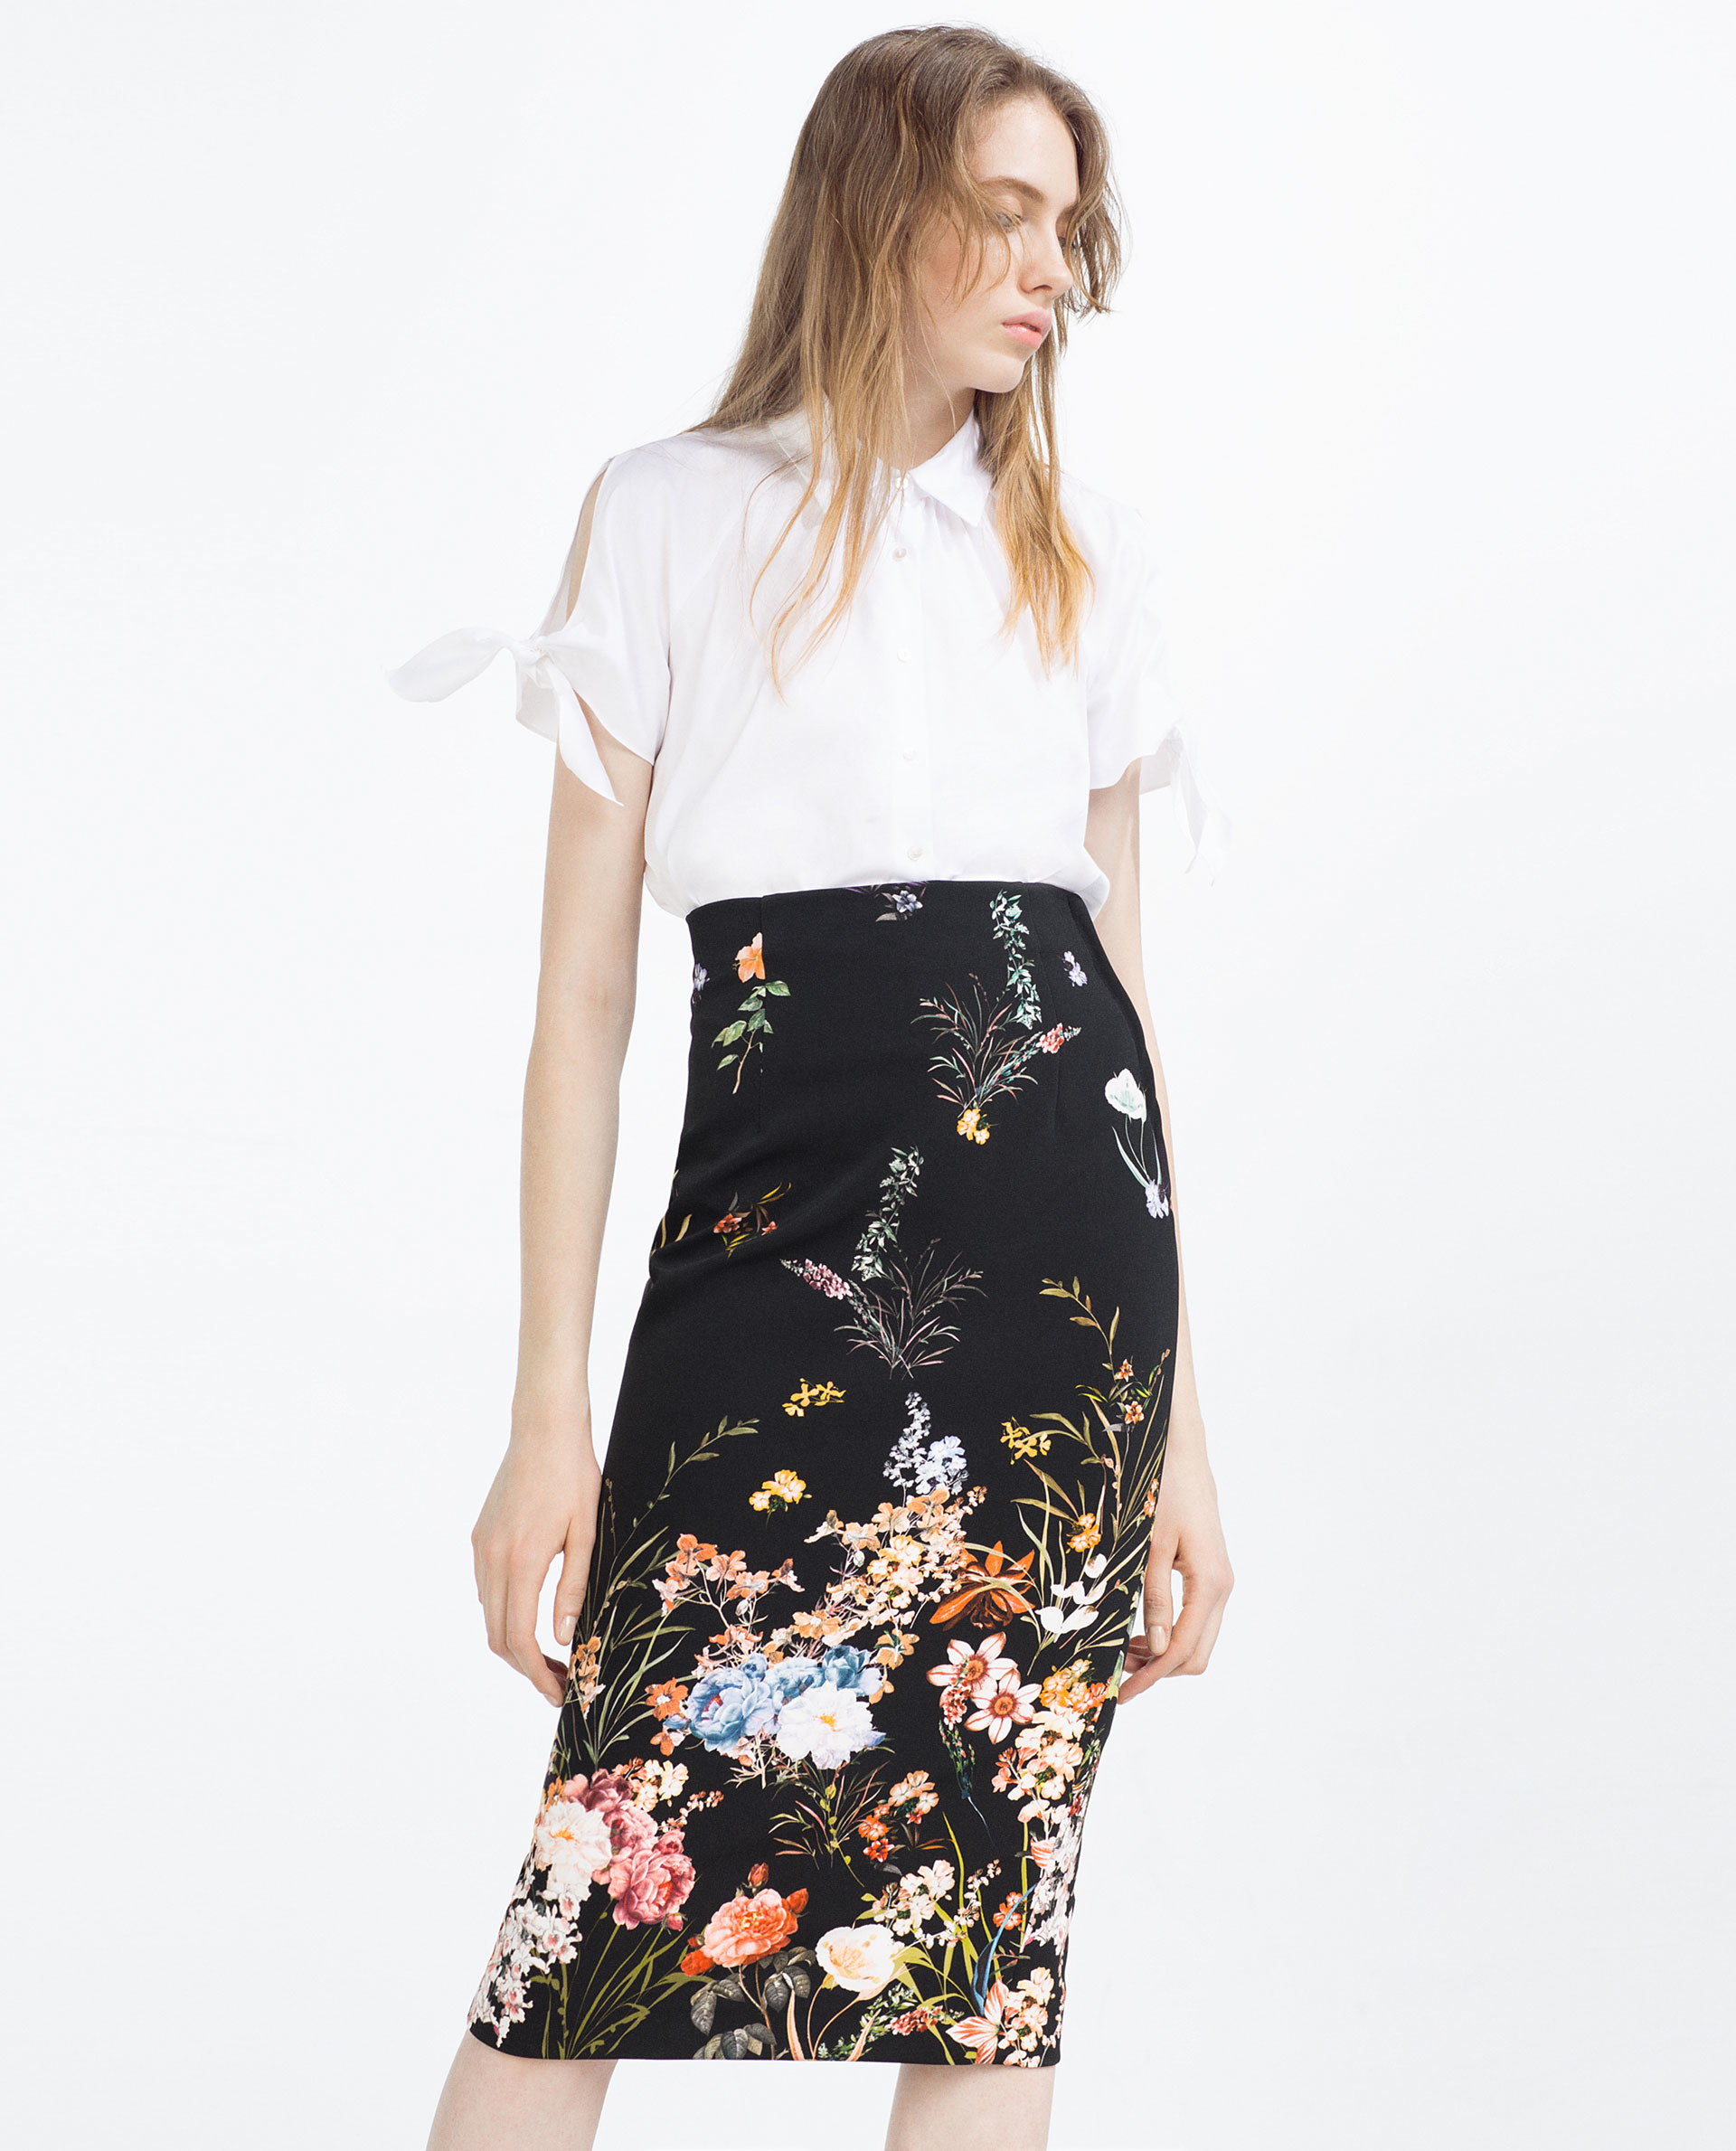 Zara Floral Pencil Skirt in Black | Lyst